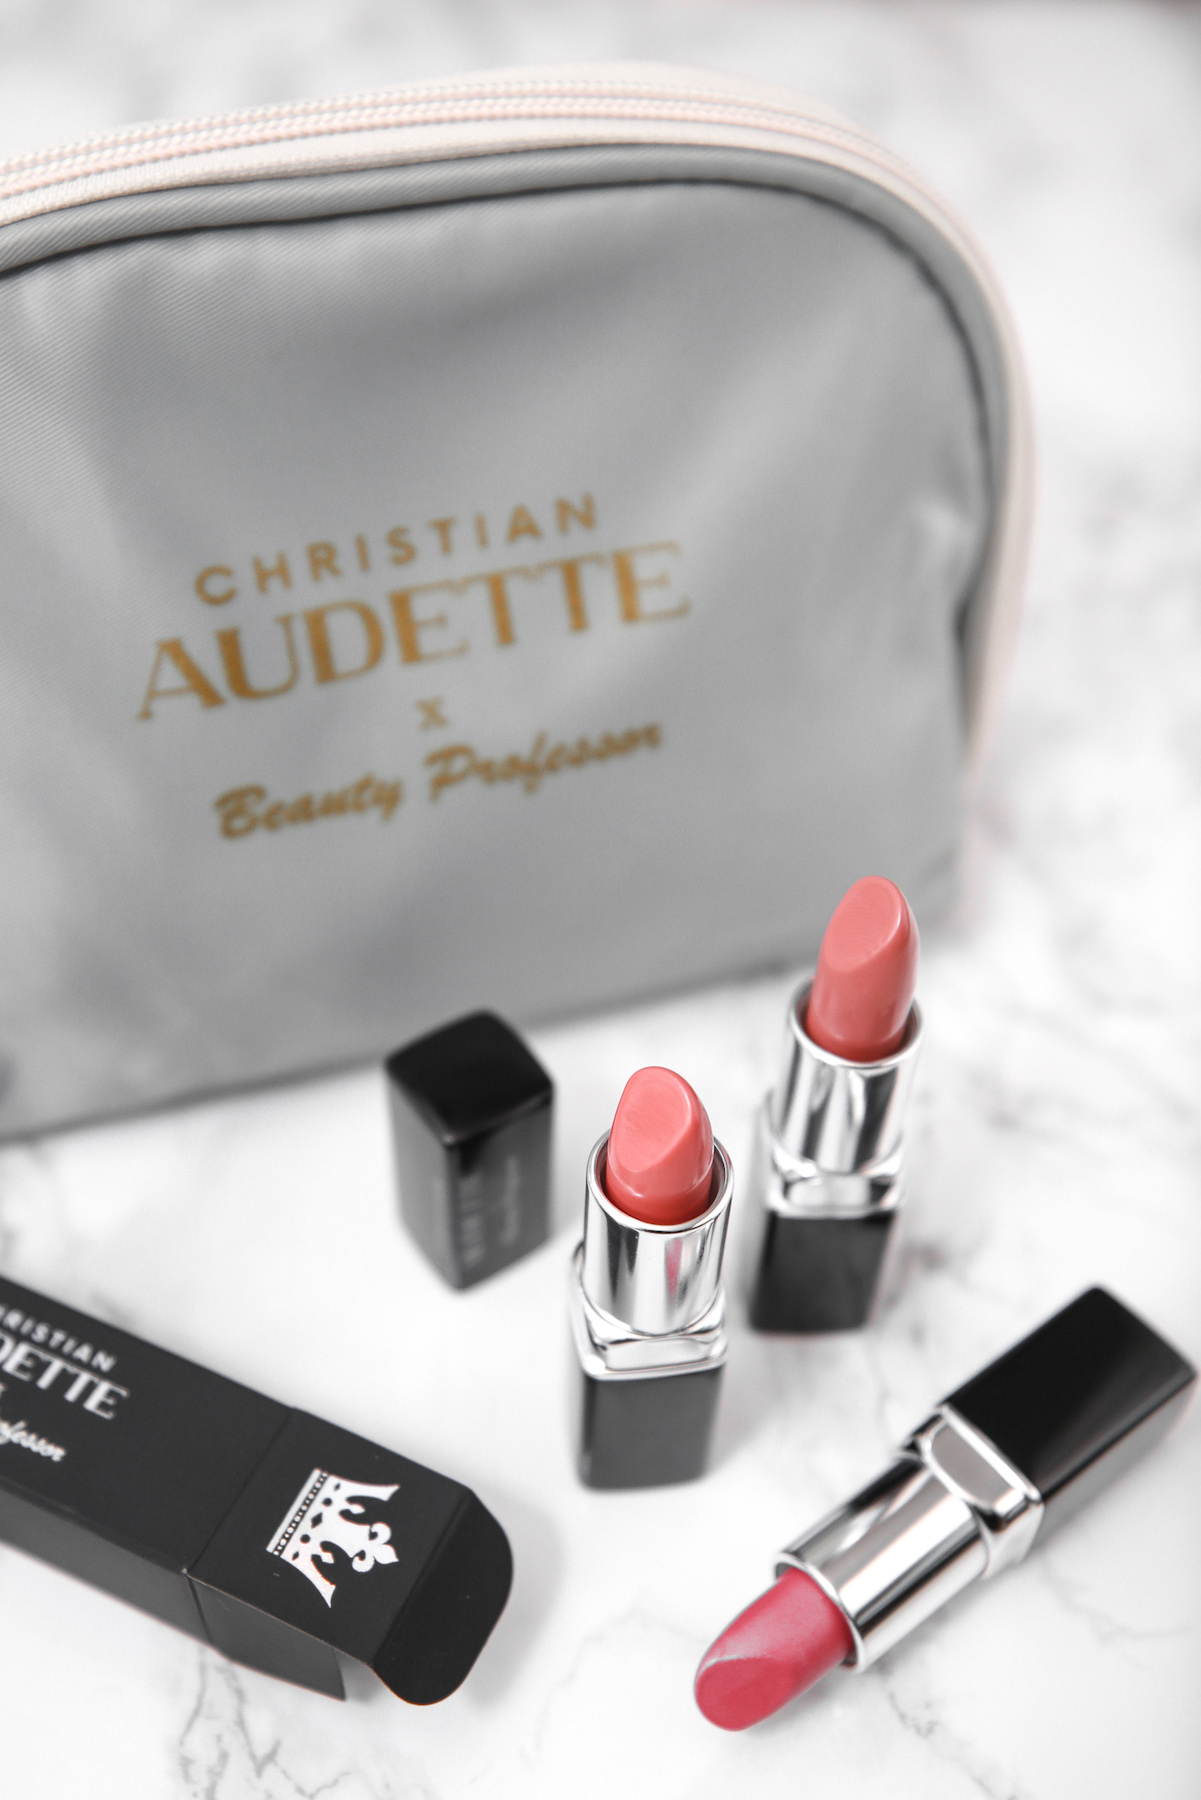 Christian Audette x Beauty Professor lipstick collection, Golightly, Johannah, Elle - beauty blog lipsick.me by Nathalie Martin_3190-2.jpg